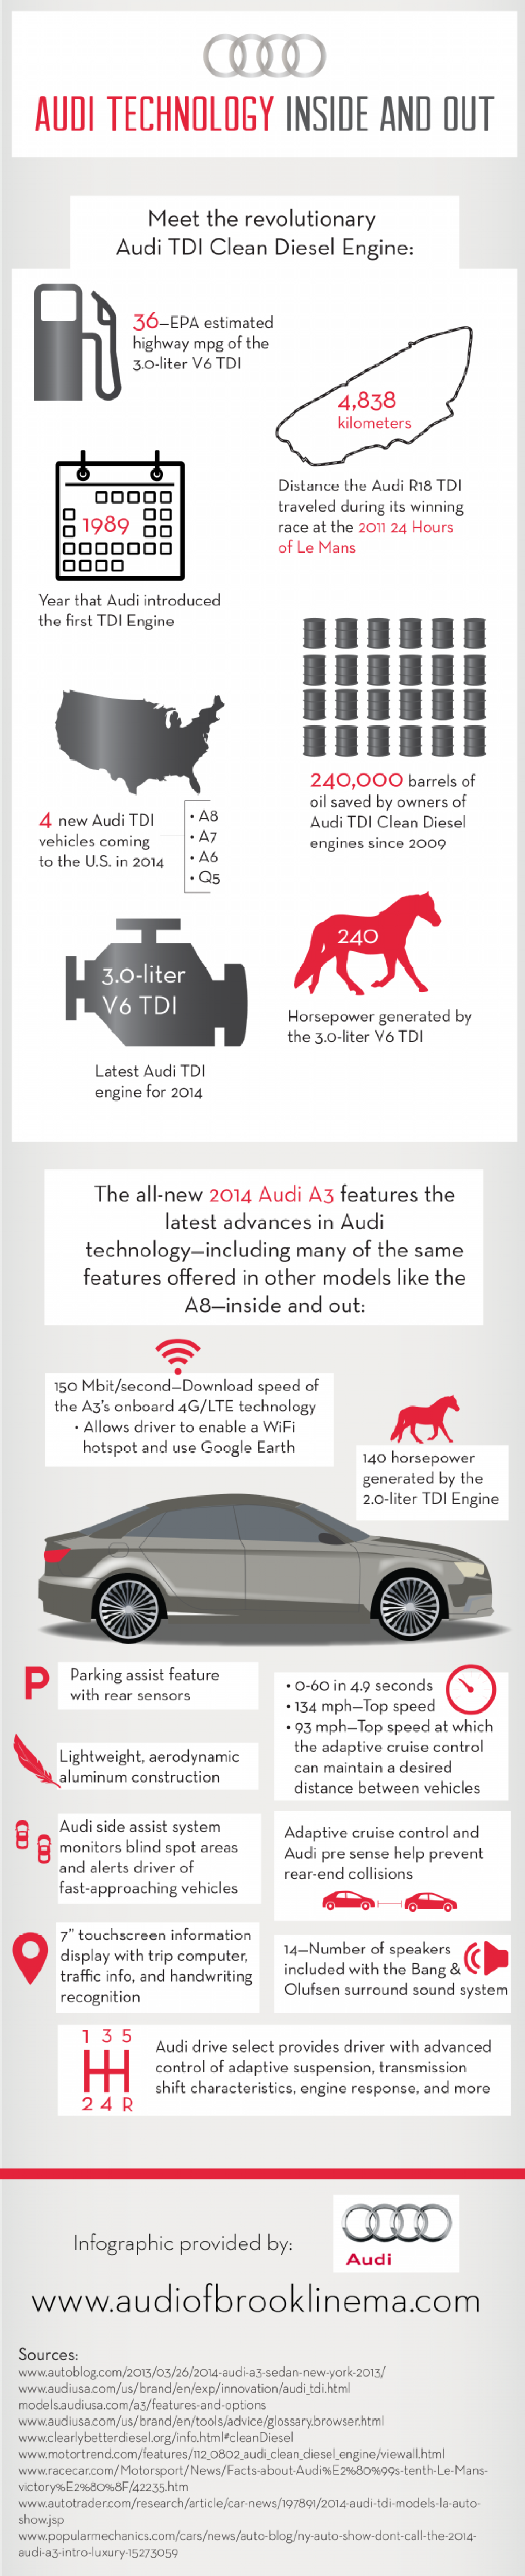 Audi Technology Inside and Out Infographic